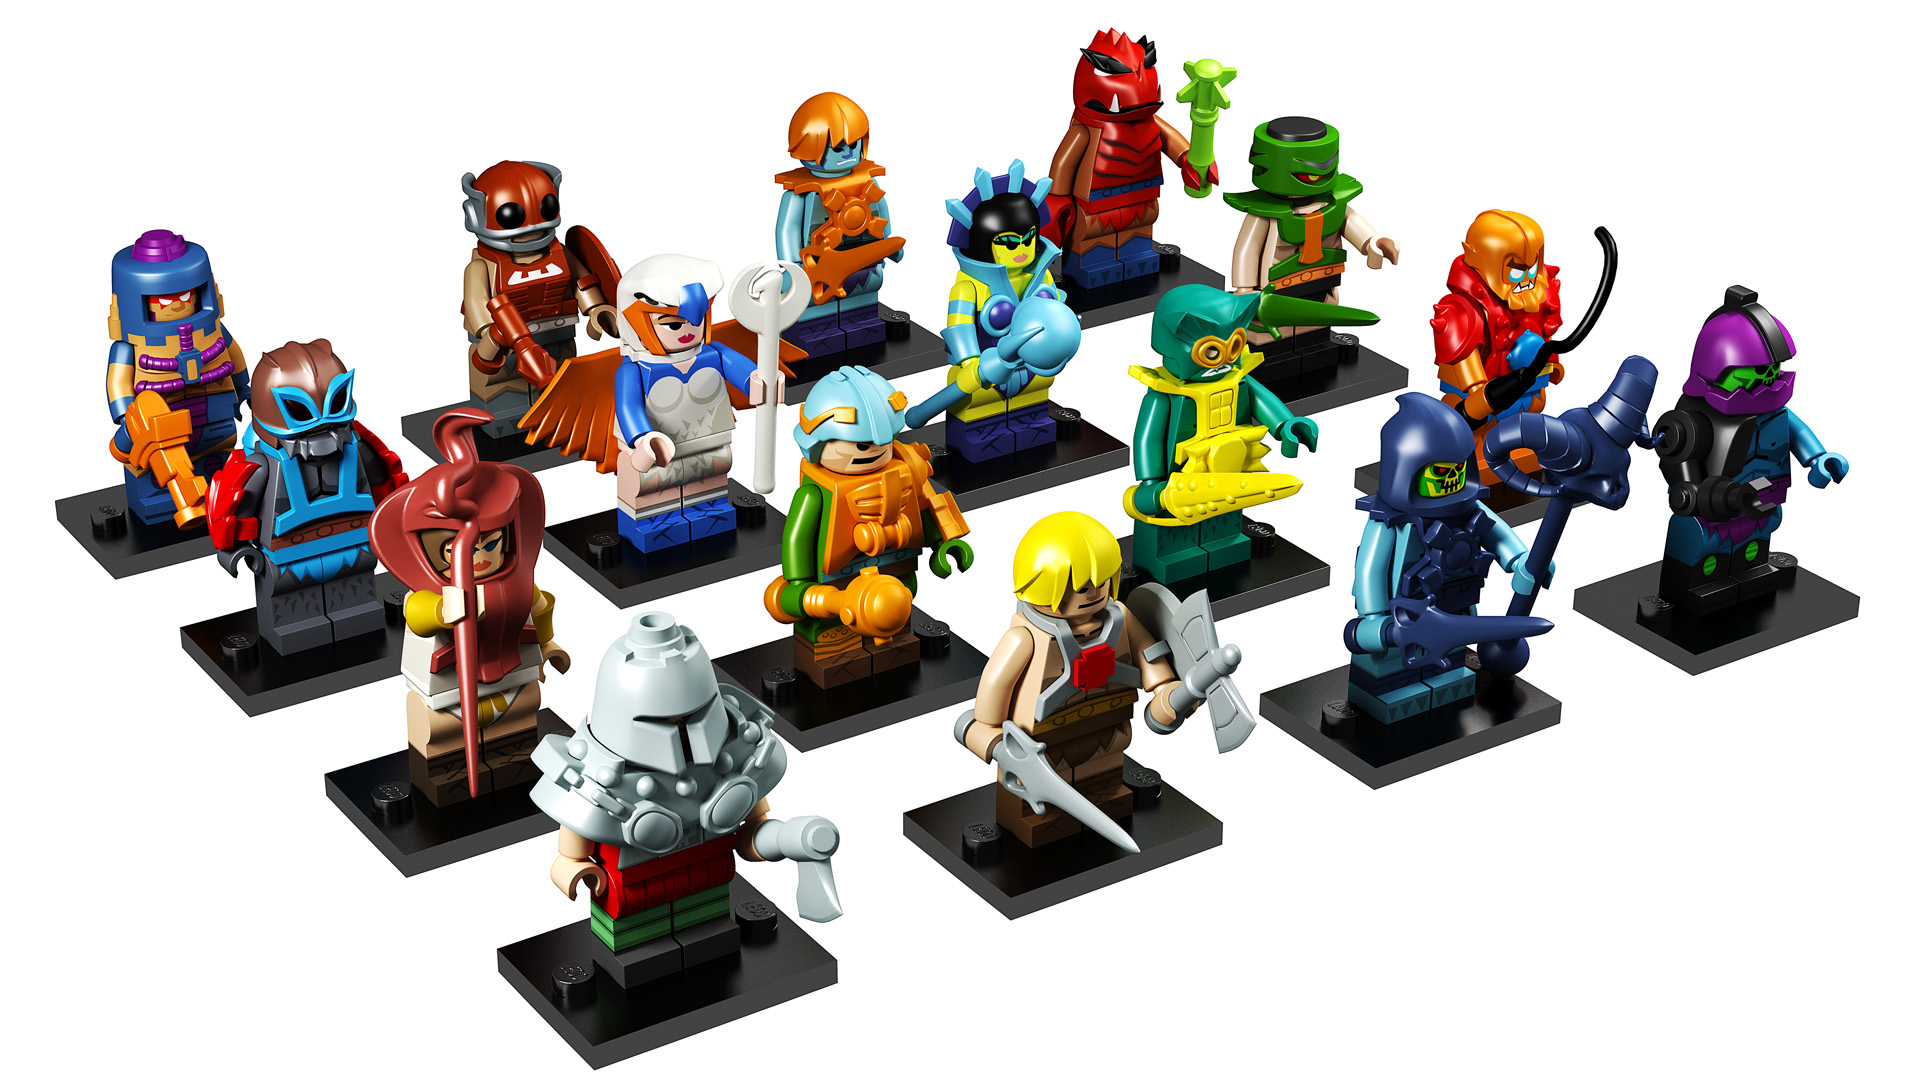 He-man And The Masters Of The Universe comics lego legos toy toys wallpaper background